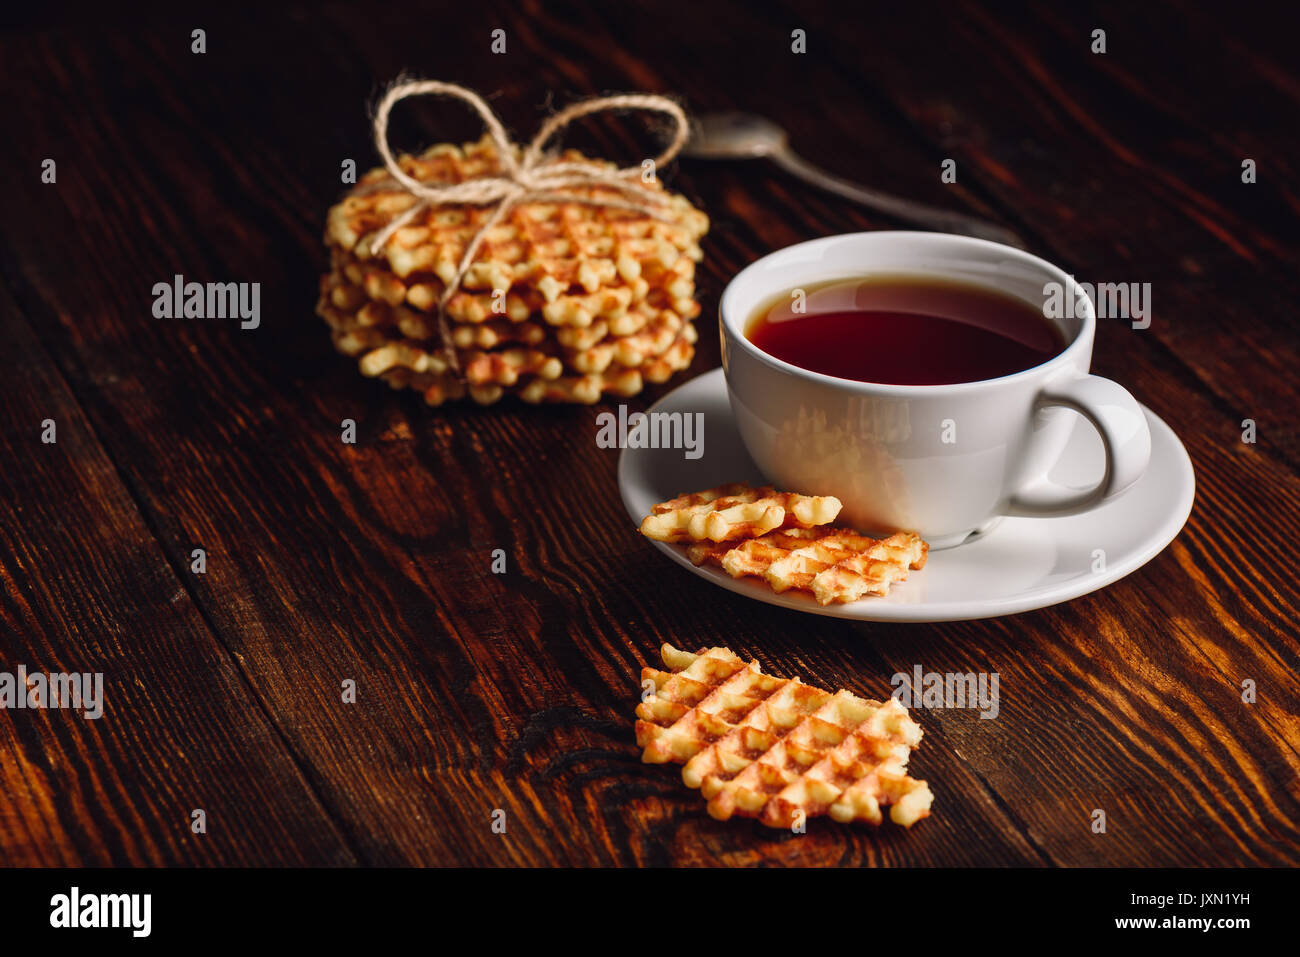 Breakfast with Hommade Waffles and Cup Tea. - Stock Image